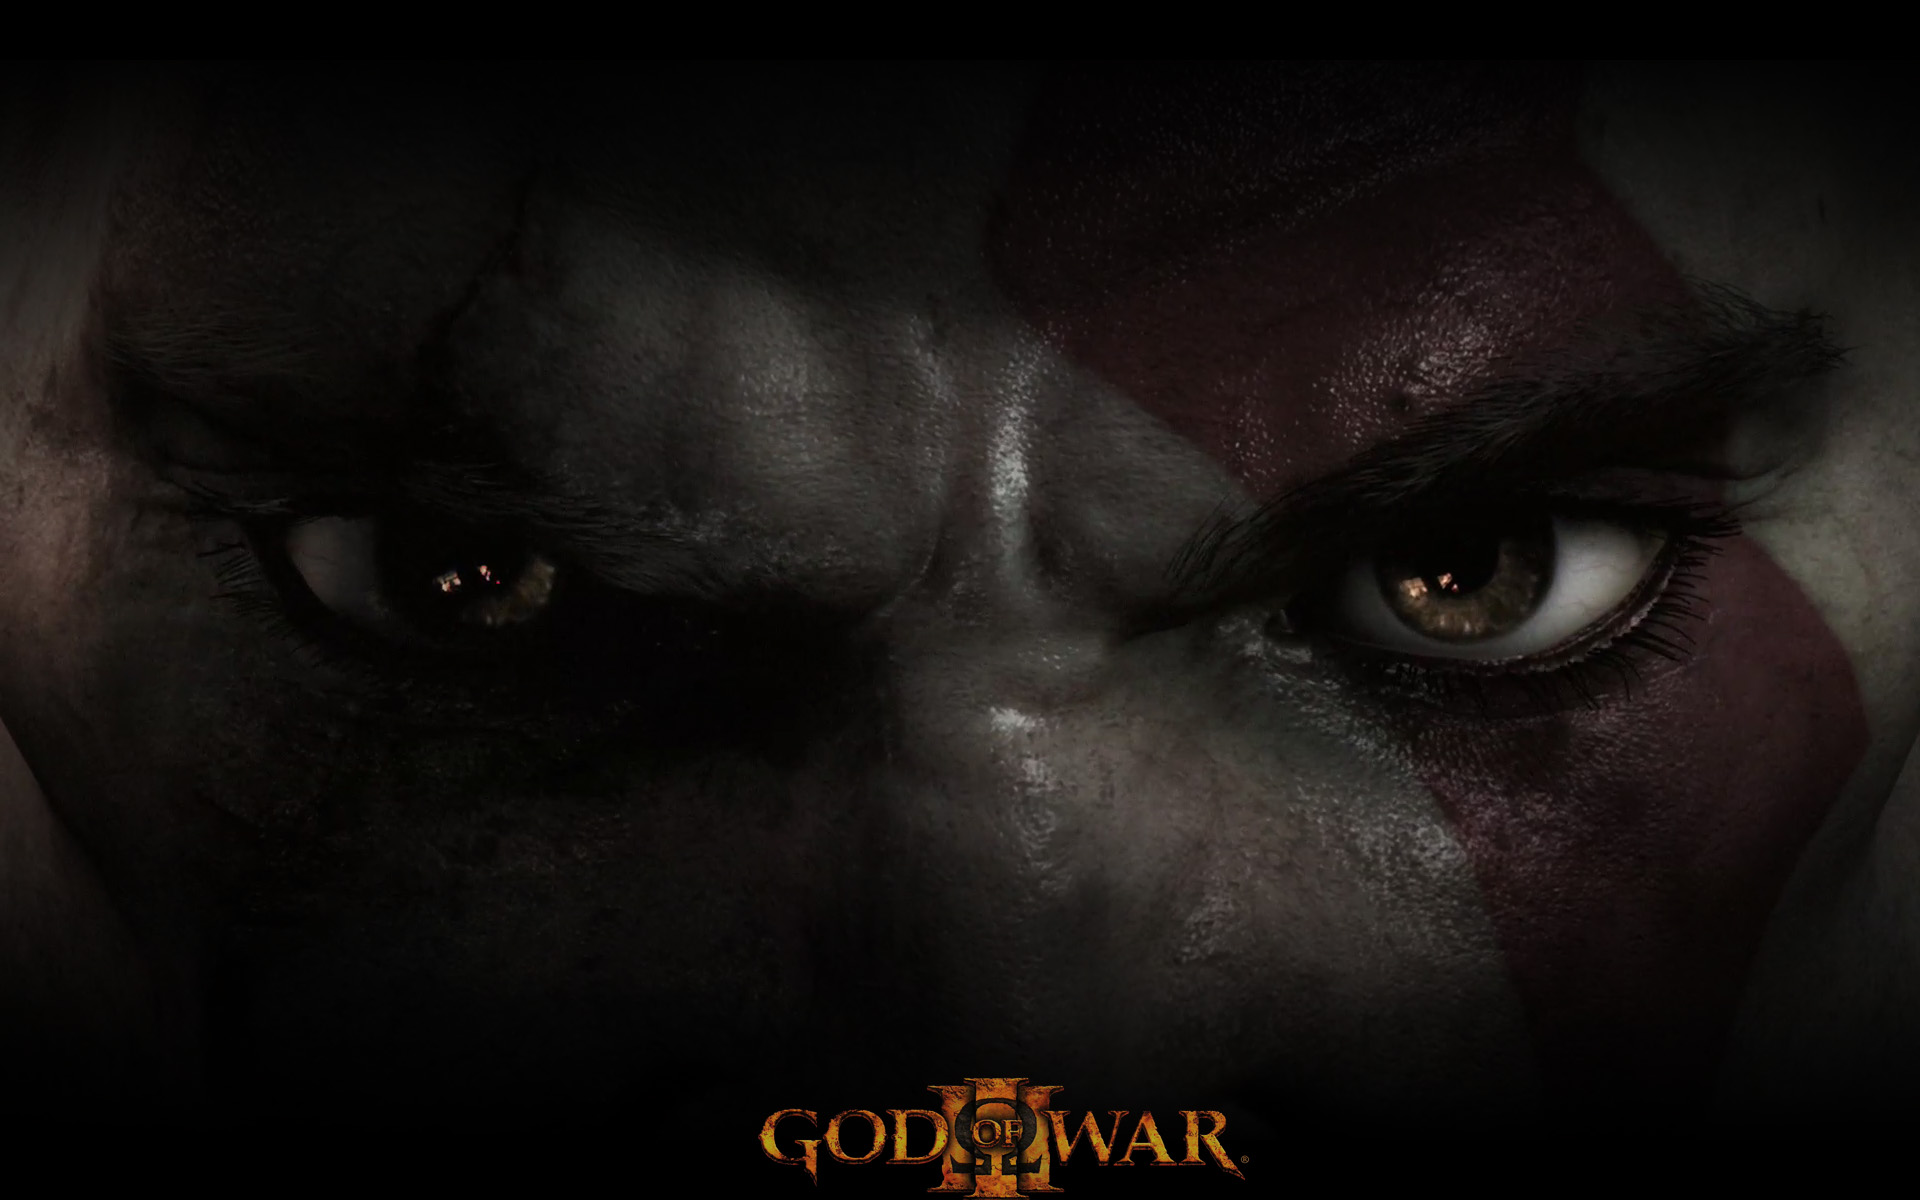 http://www.ng4a.com/wp-content/uploads/2009/11/god-of-war-31.jpg